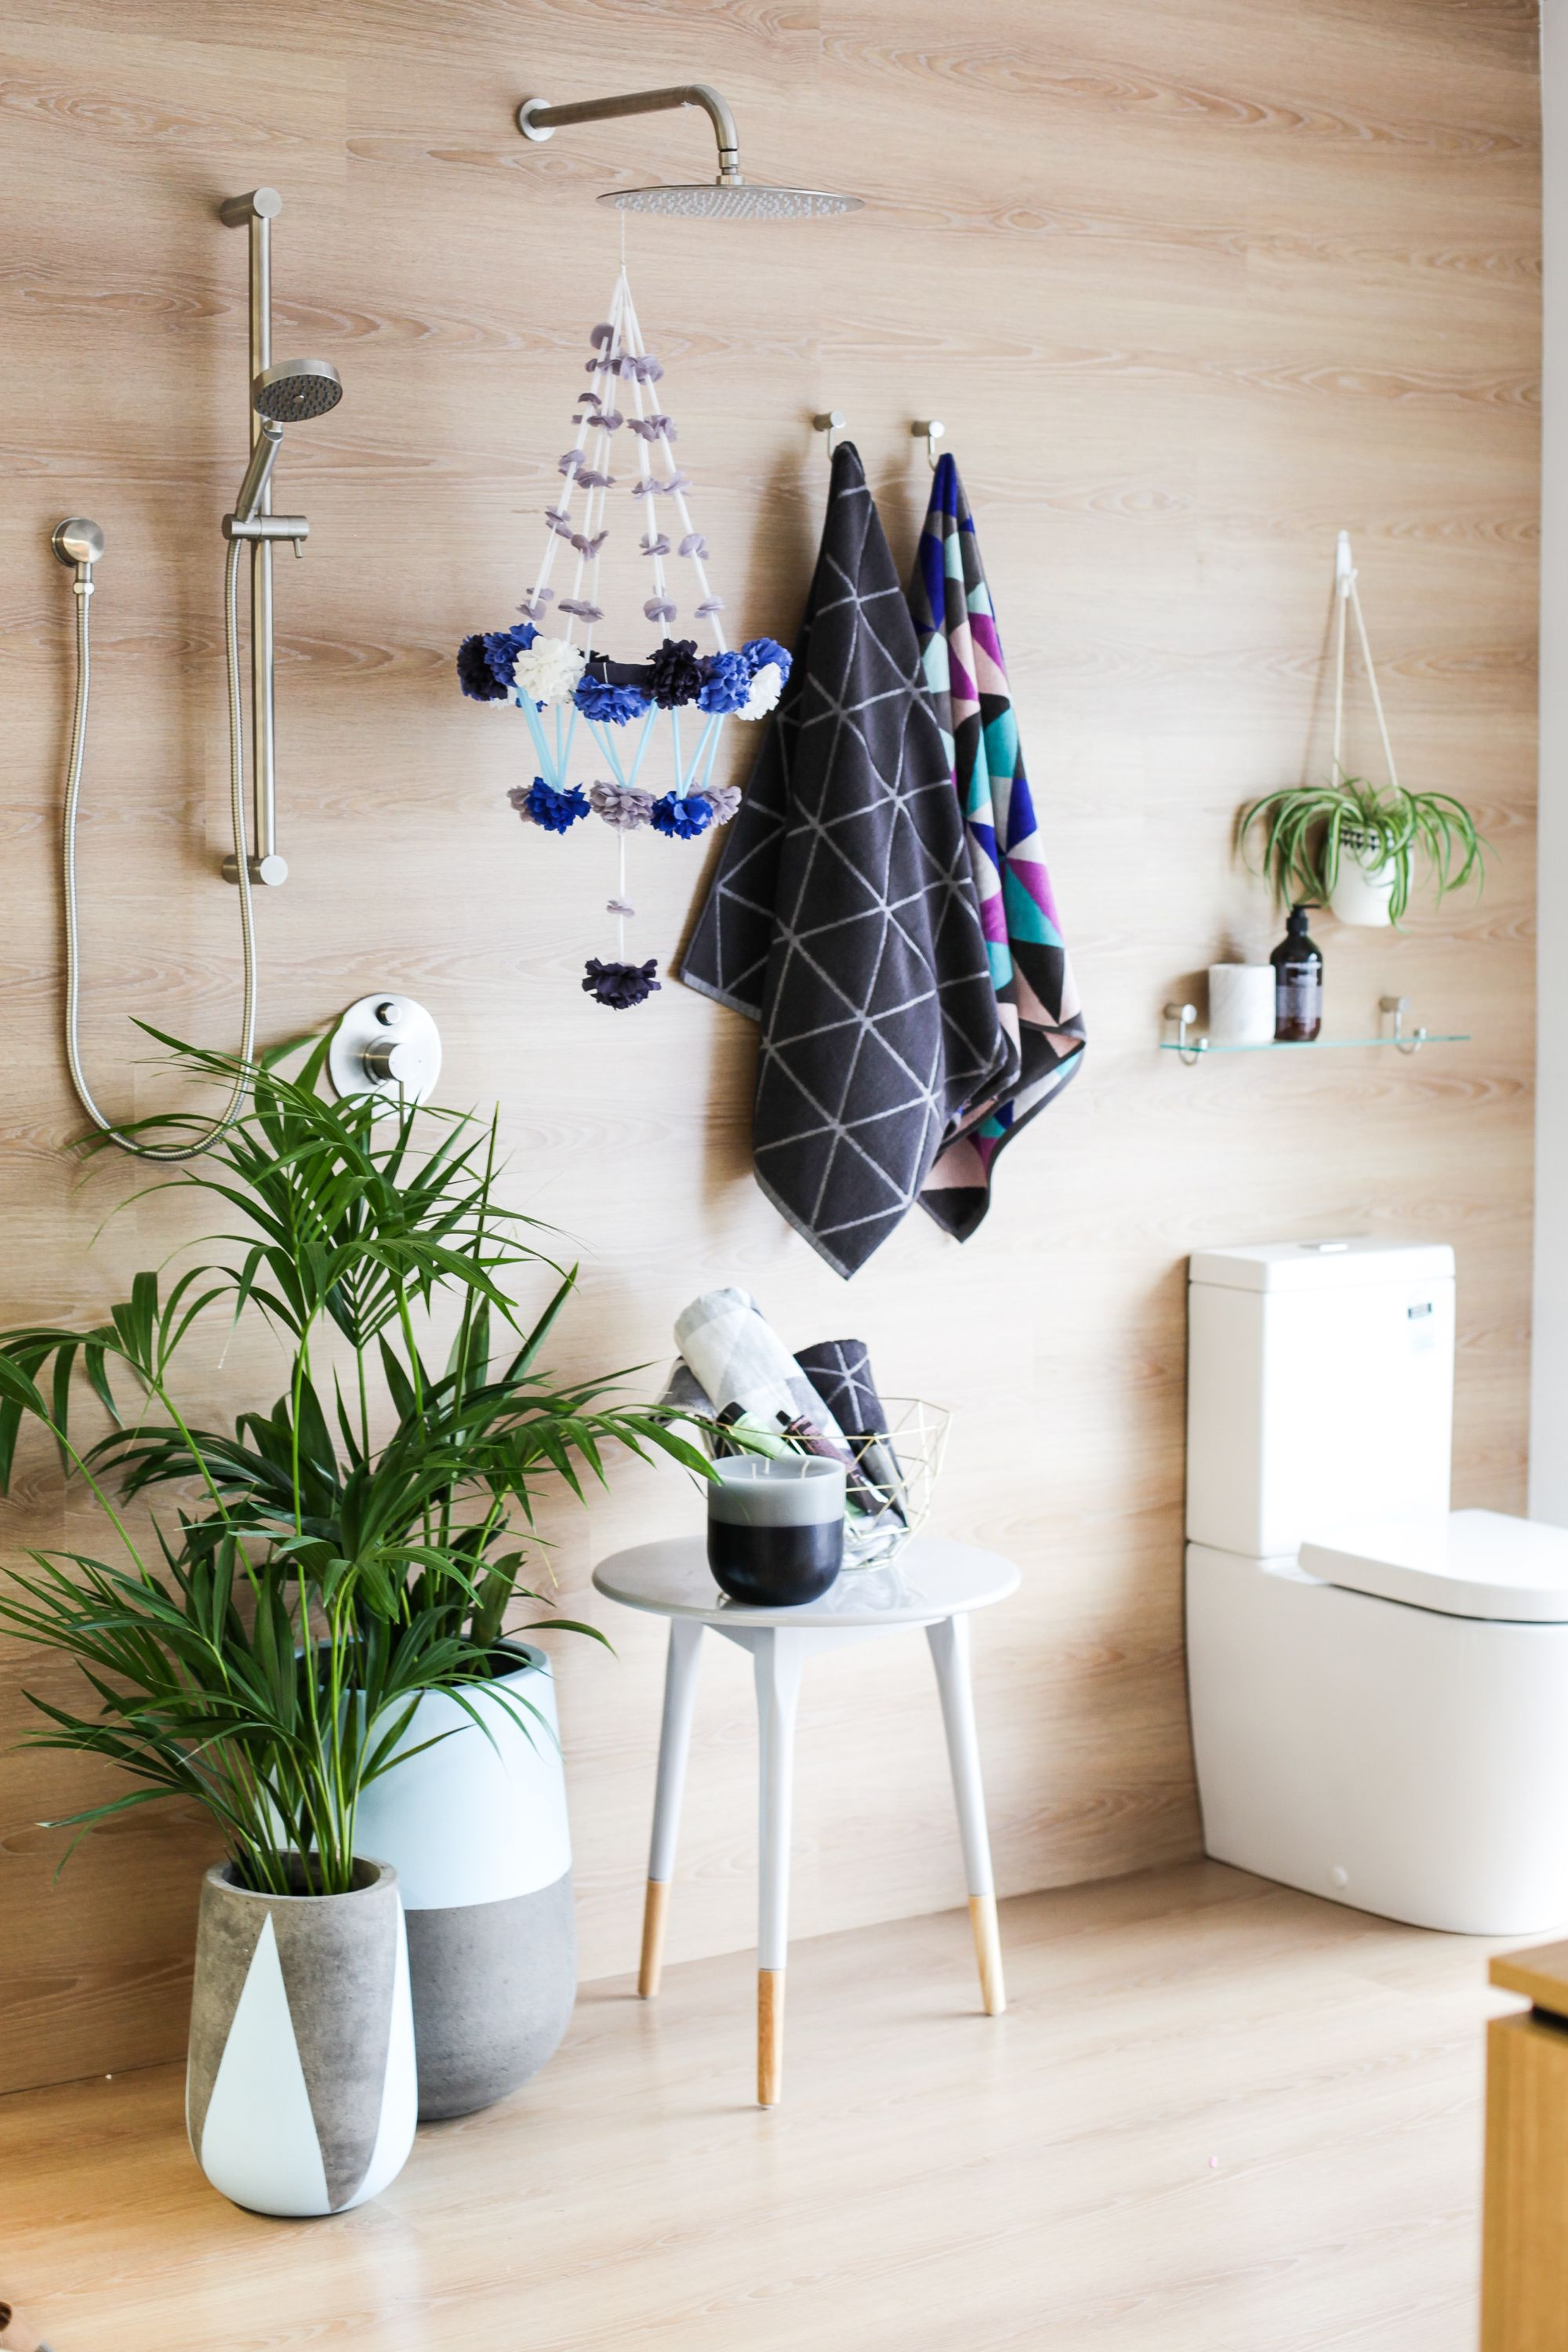 Boho Bathroom Styling Featuring The Caroma Titan Showers And Urbane Toilet Suite